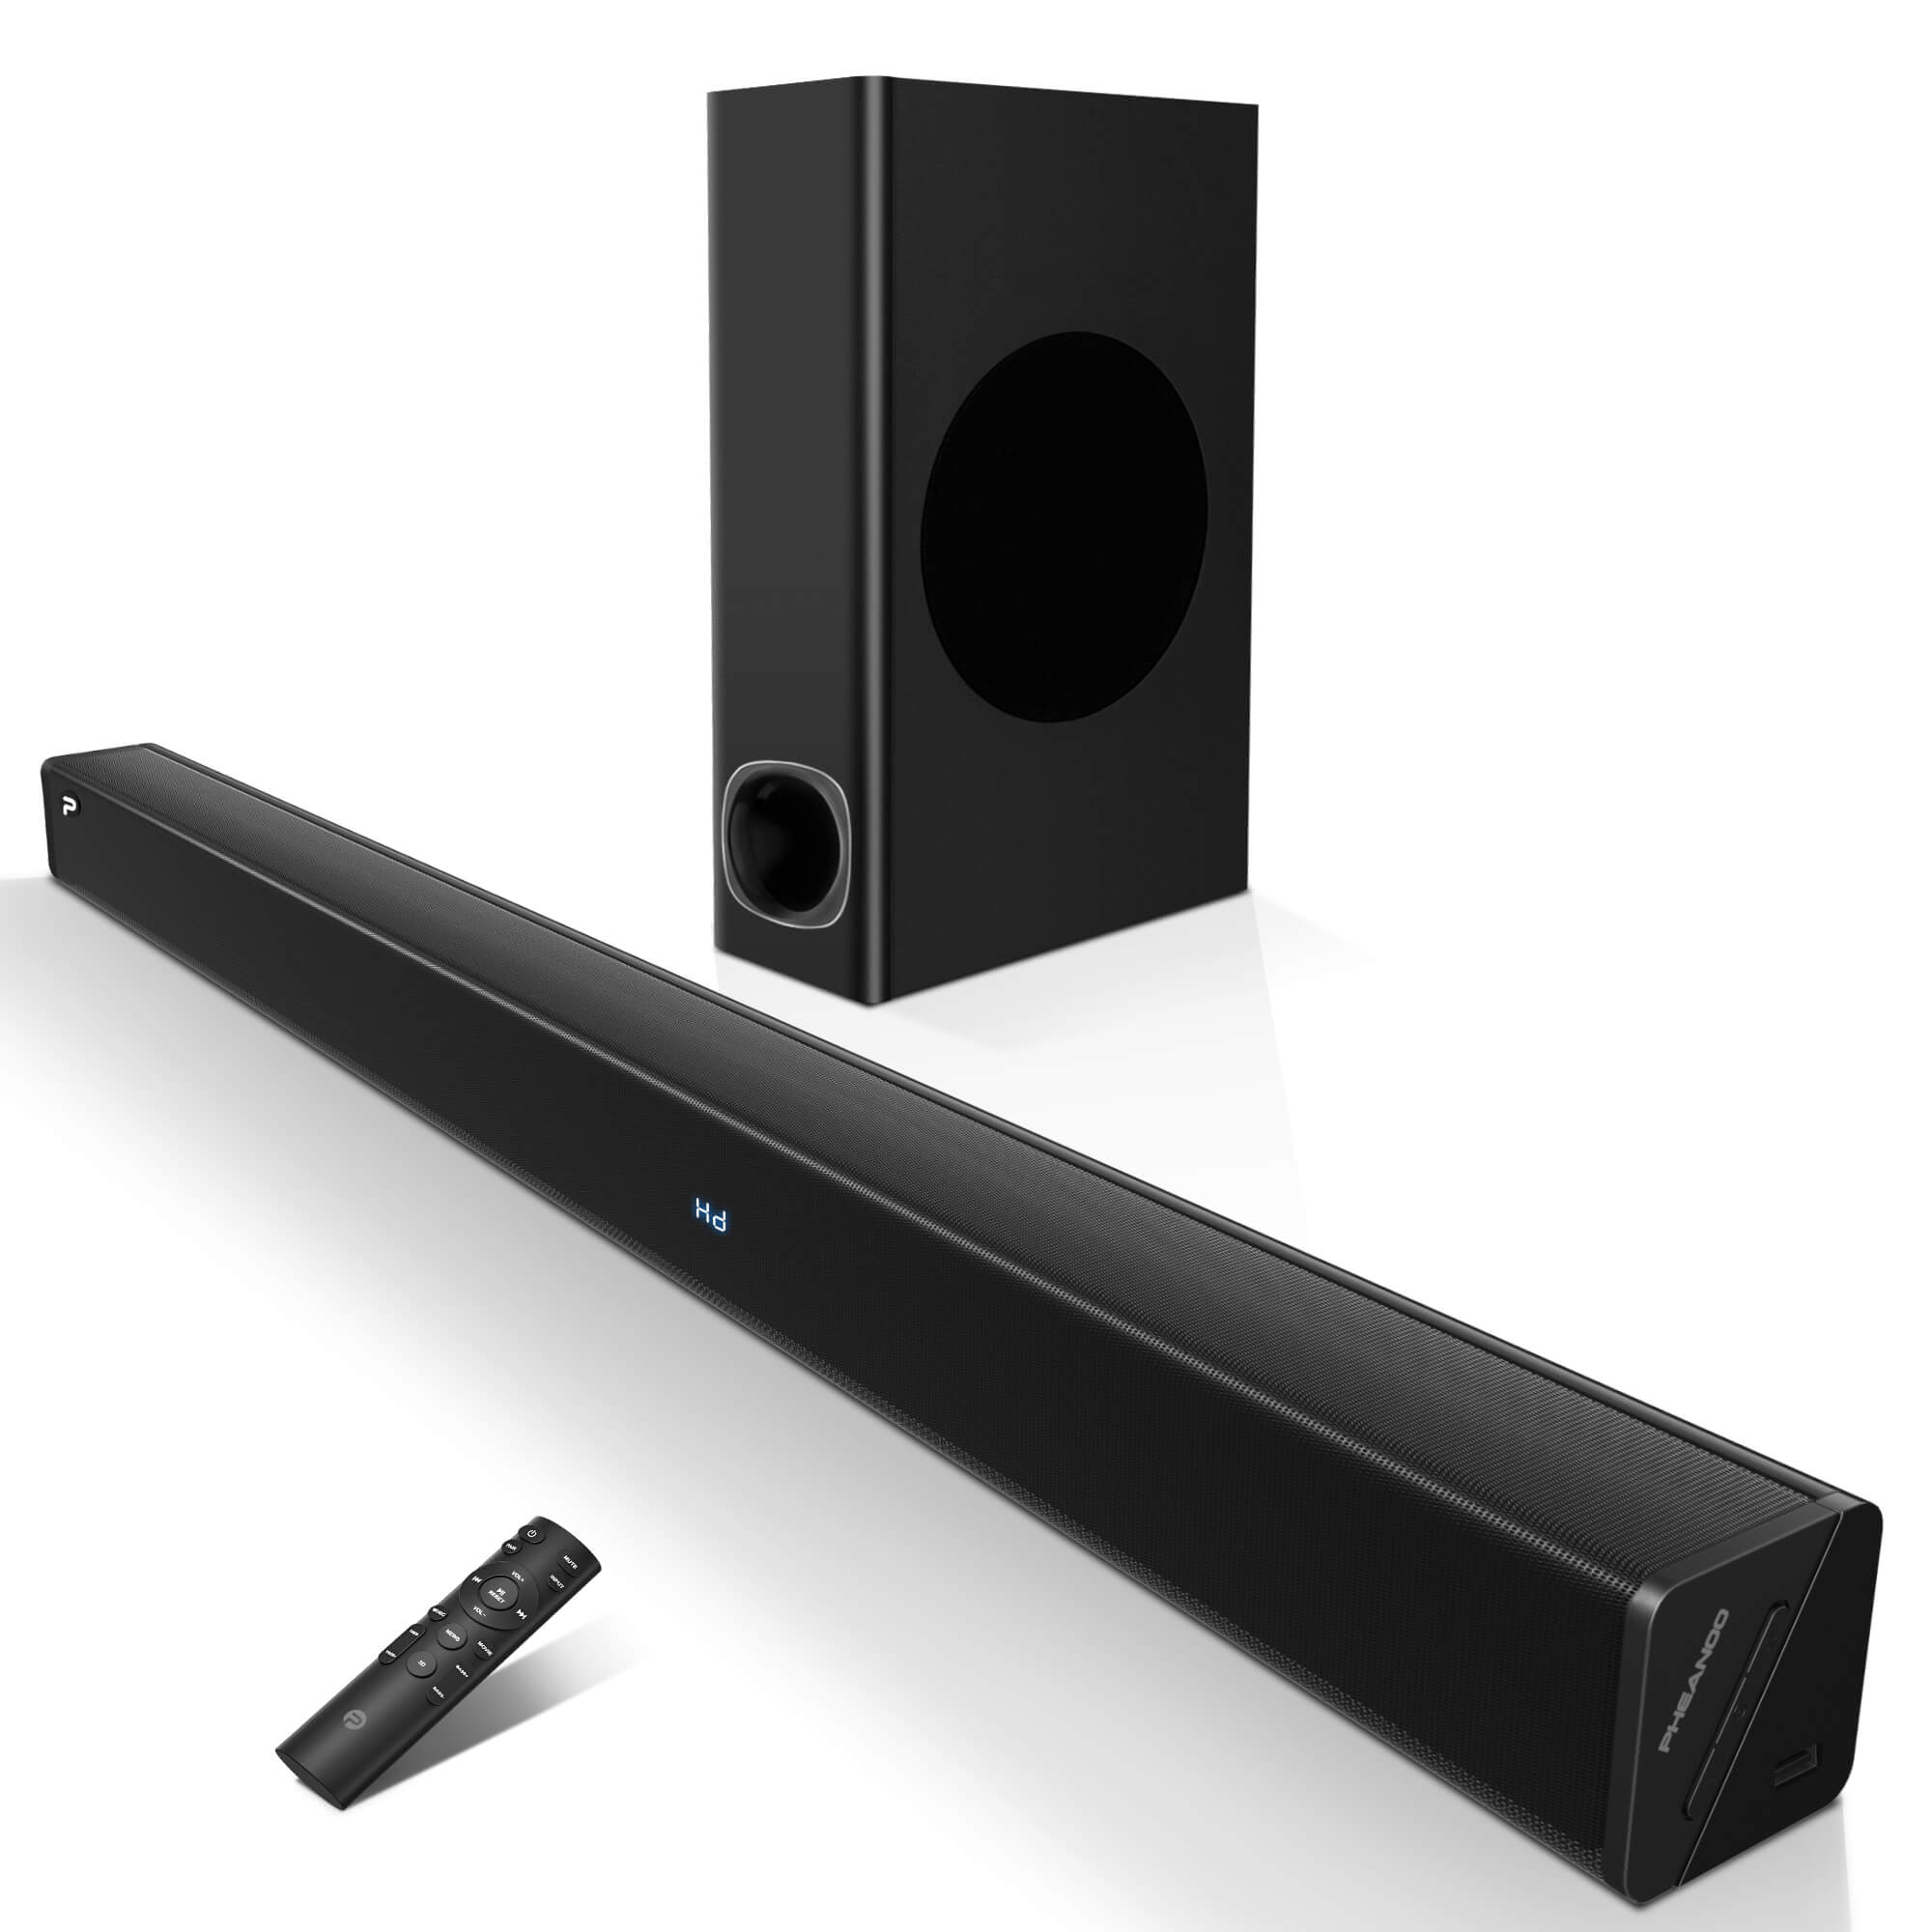 Pheanoo Audio Ltd Supplies Sound Bar Systems With Subwoofer for TV To Improve Movie Viewing And Music Listening Experience